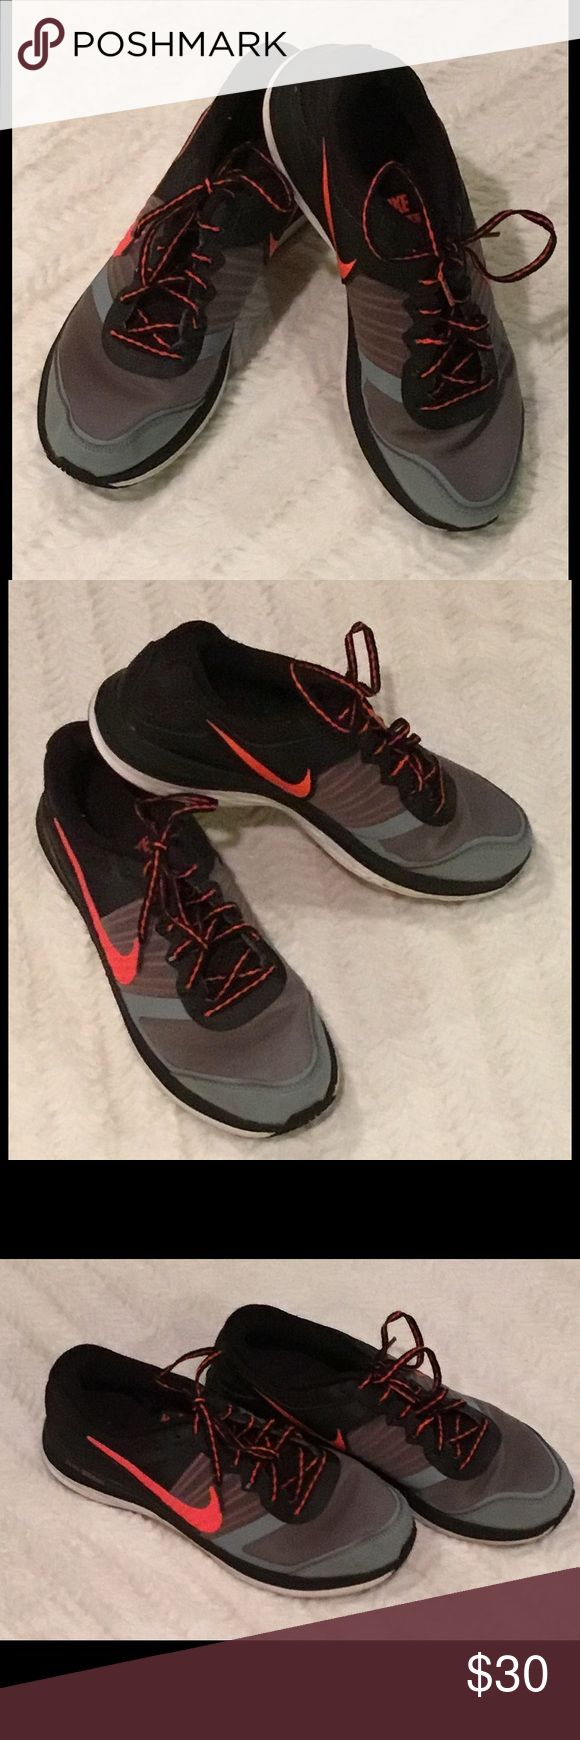 Men's Nike Sneakers 👟 Gently Used in Great Shape...My son barely wore them. Like New * Nike Shoes Sneakers